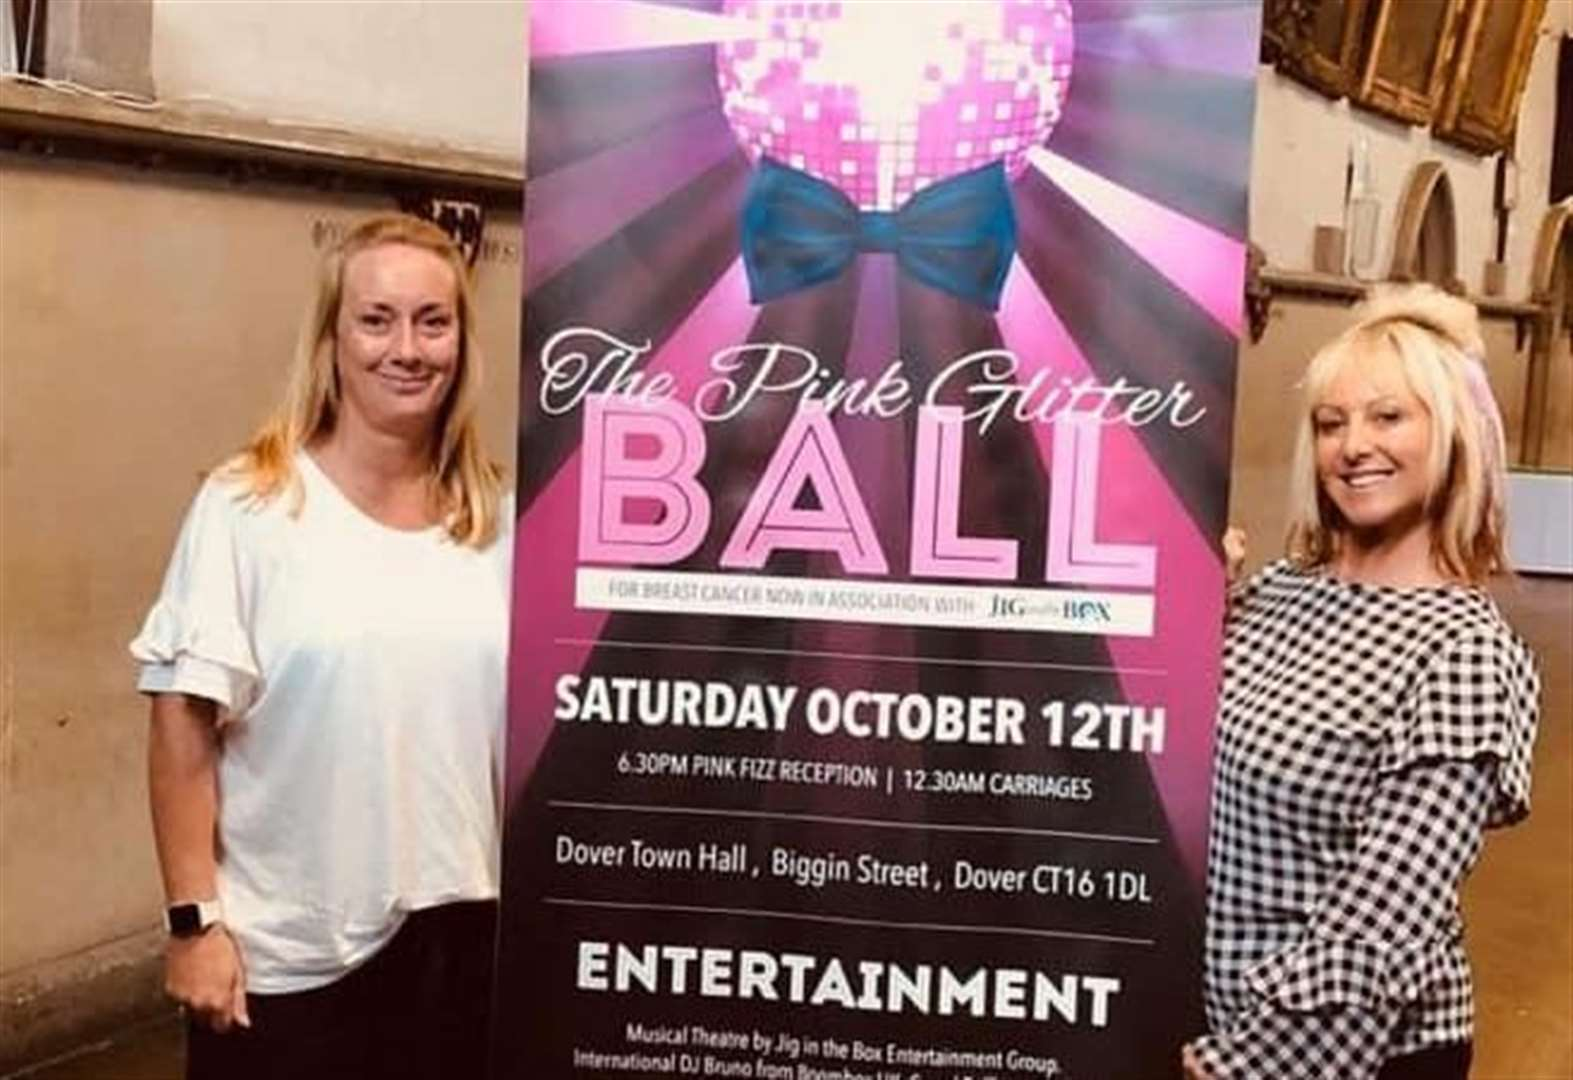 Charity's CEO accepts invite to breast cancer ball